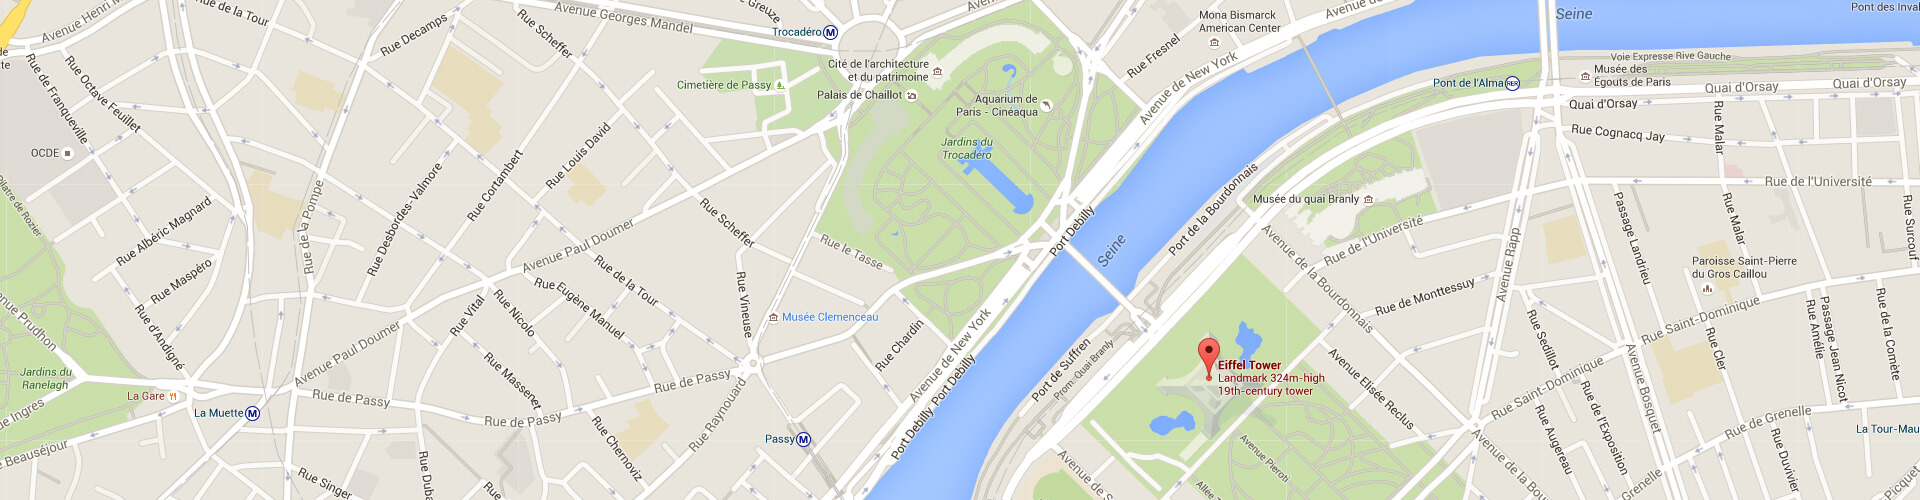 How to integrate Google Maps into your site - YIKES, Inc.